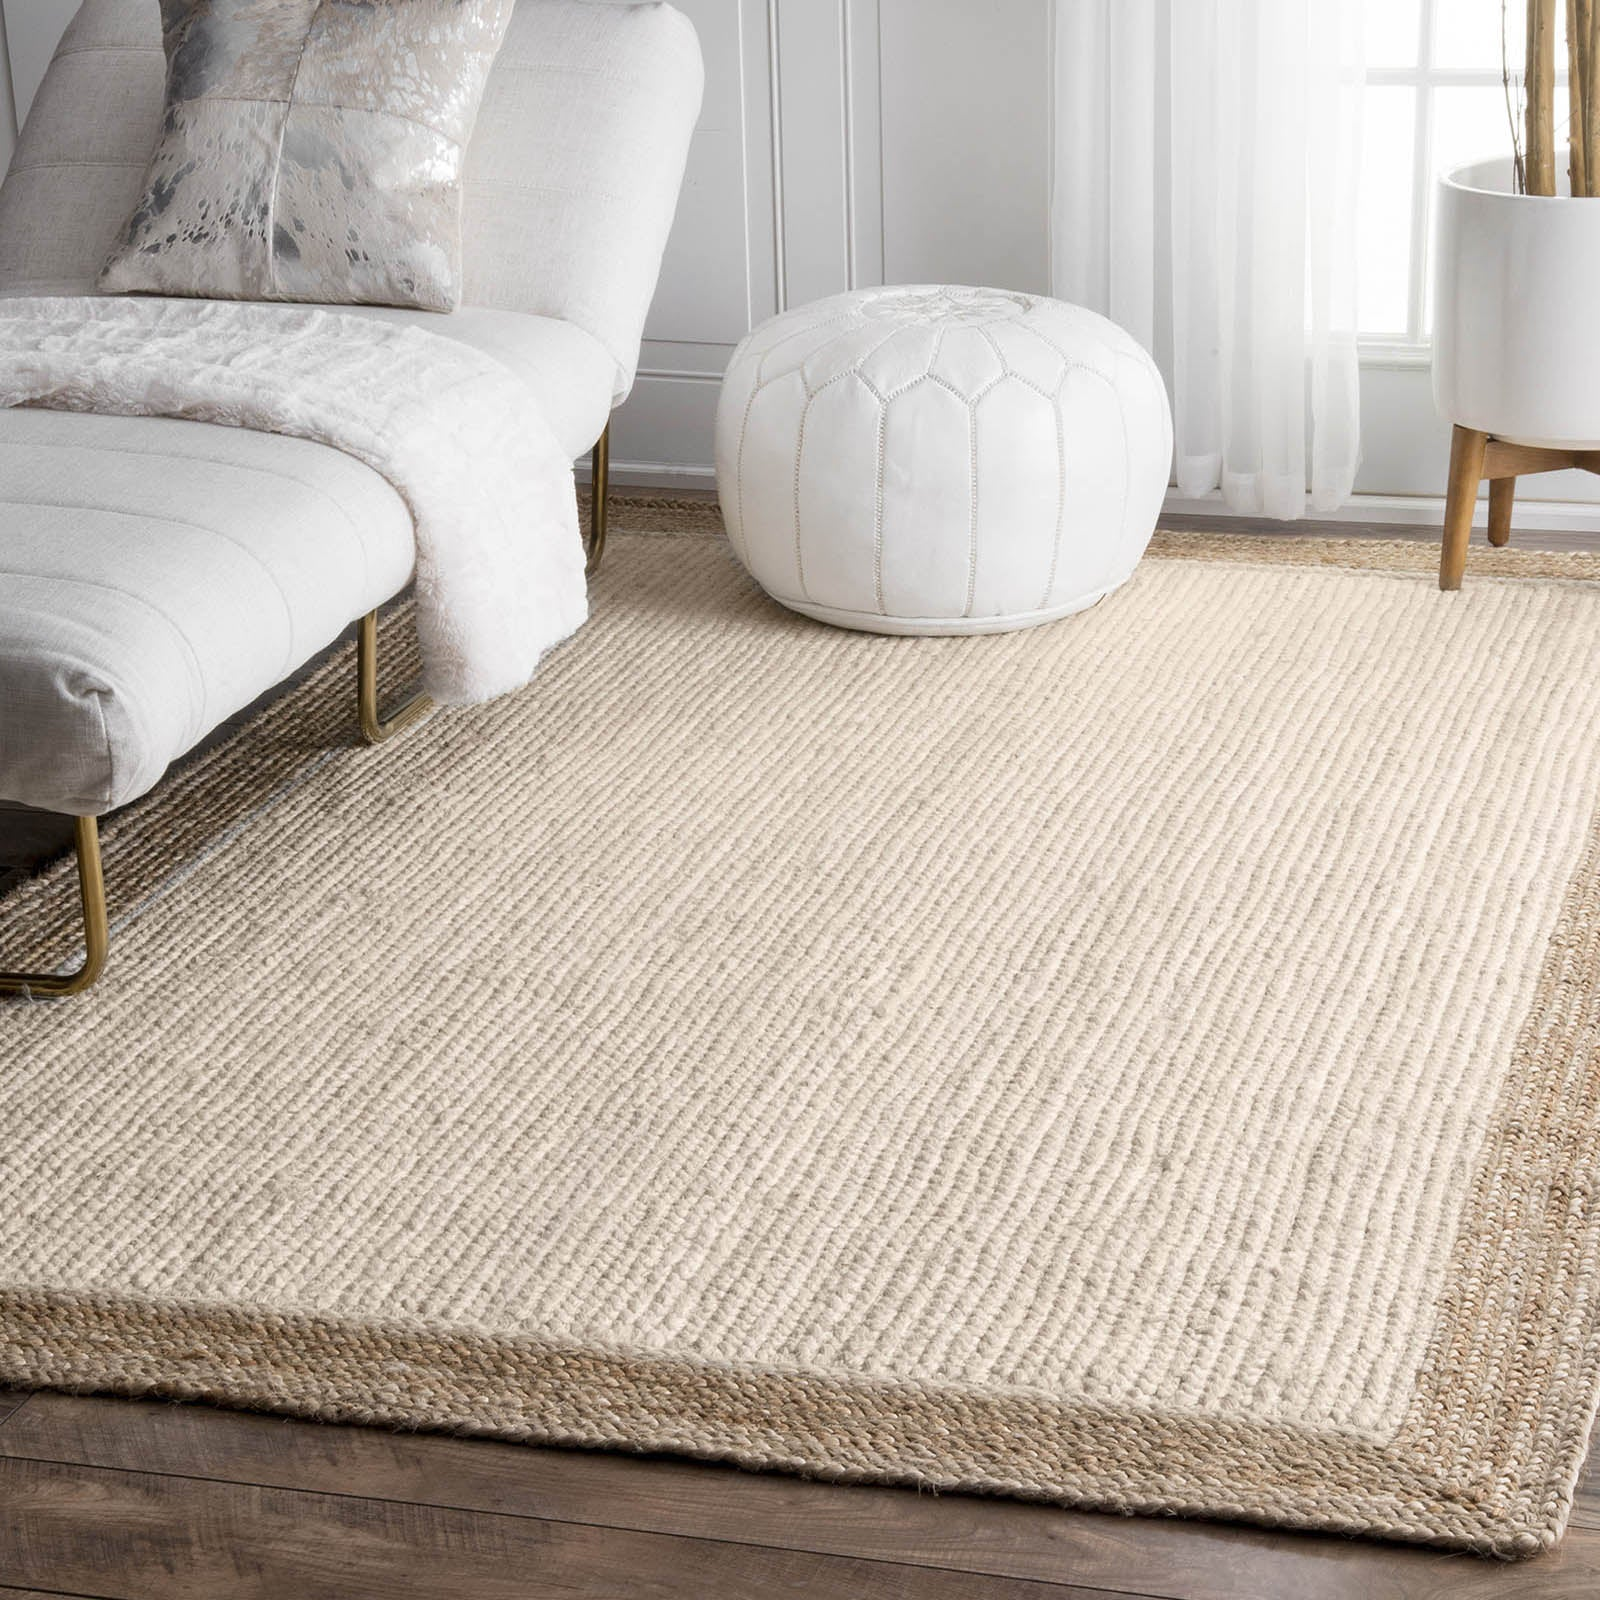 230x160 cm Braided Handmade Jute Rug Braided-001L -  230x160 سم سجادة مضفرة مصنوعة يدويًا من الجوت - Shop Online Furniture and Home Decor Store in Dubai, UAE at ebarza